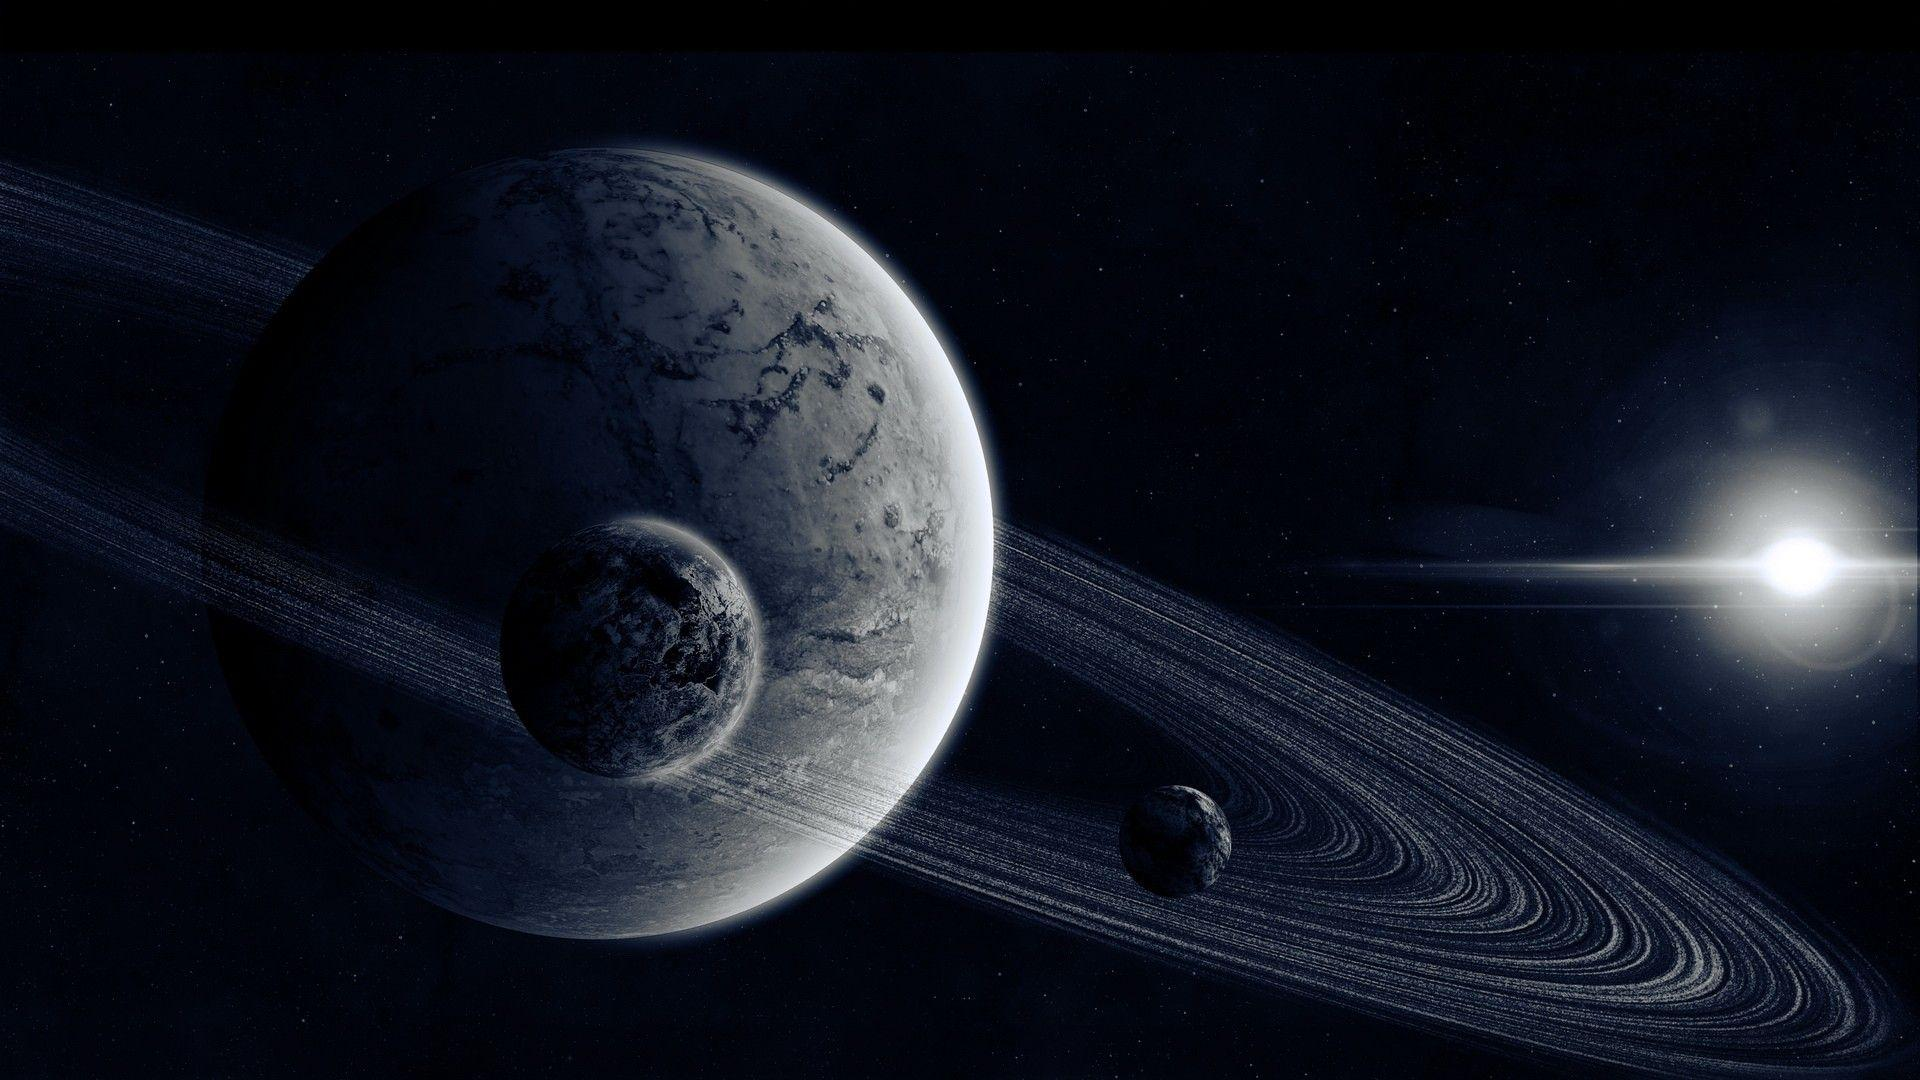 planets asteroids stars - photo #23